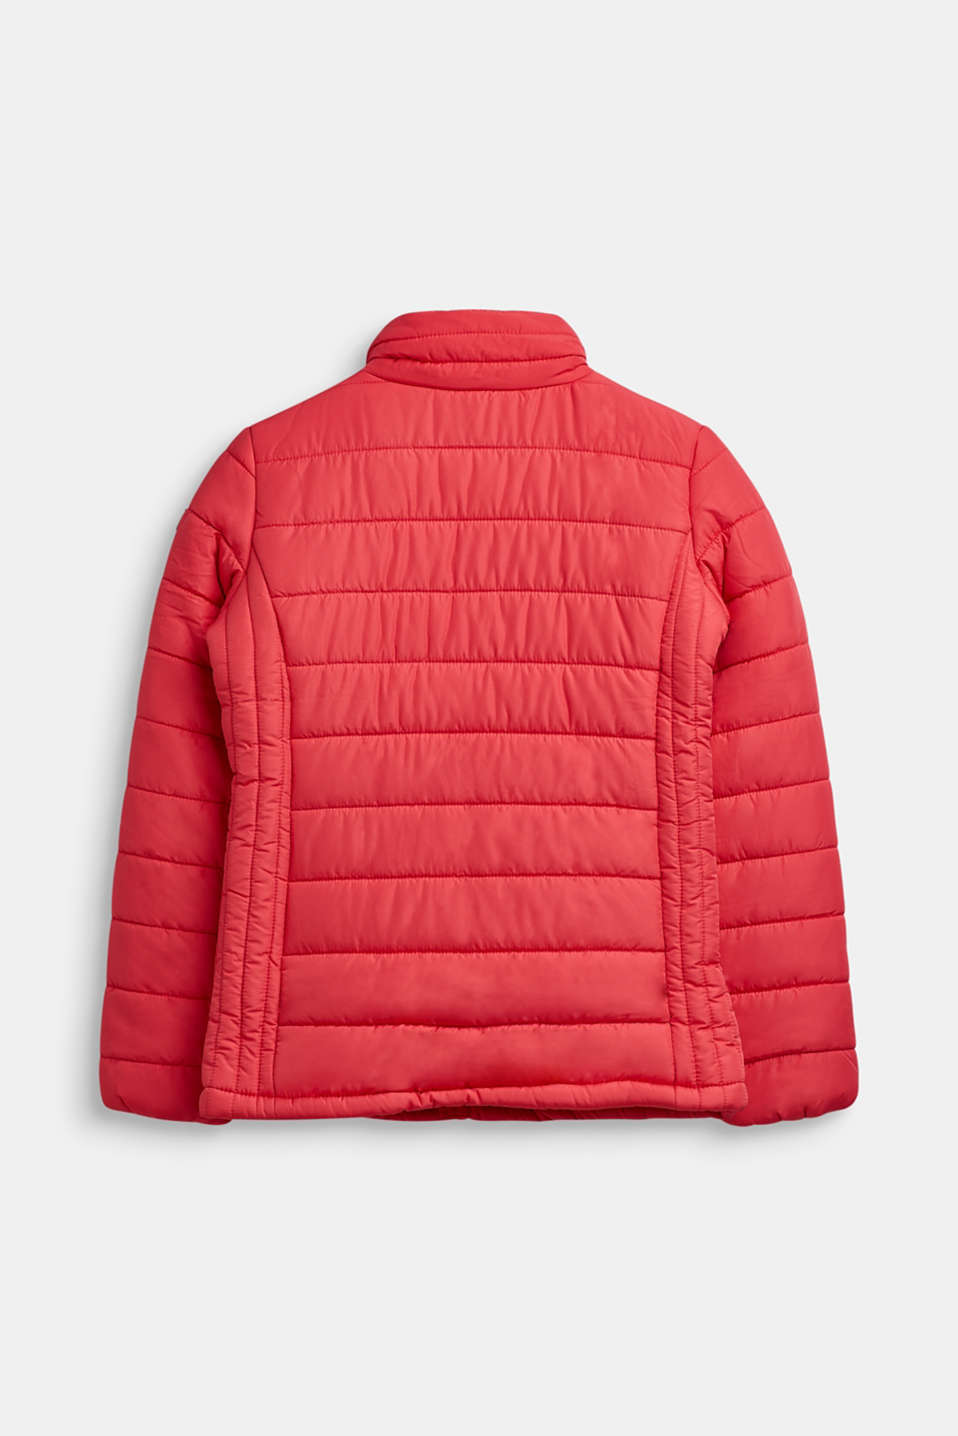 Quilted jacket with a stand-up collar, LCSTRAWBERRY, detail image number 1